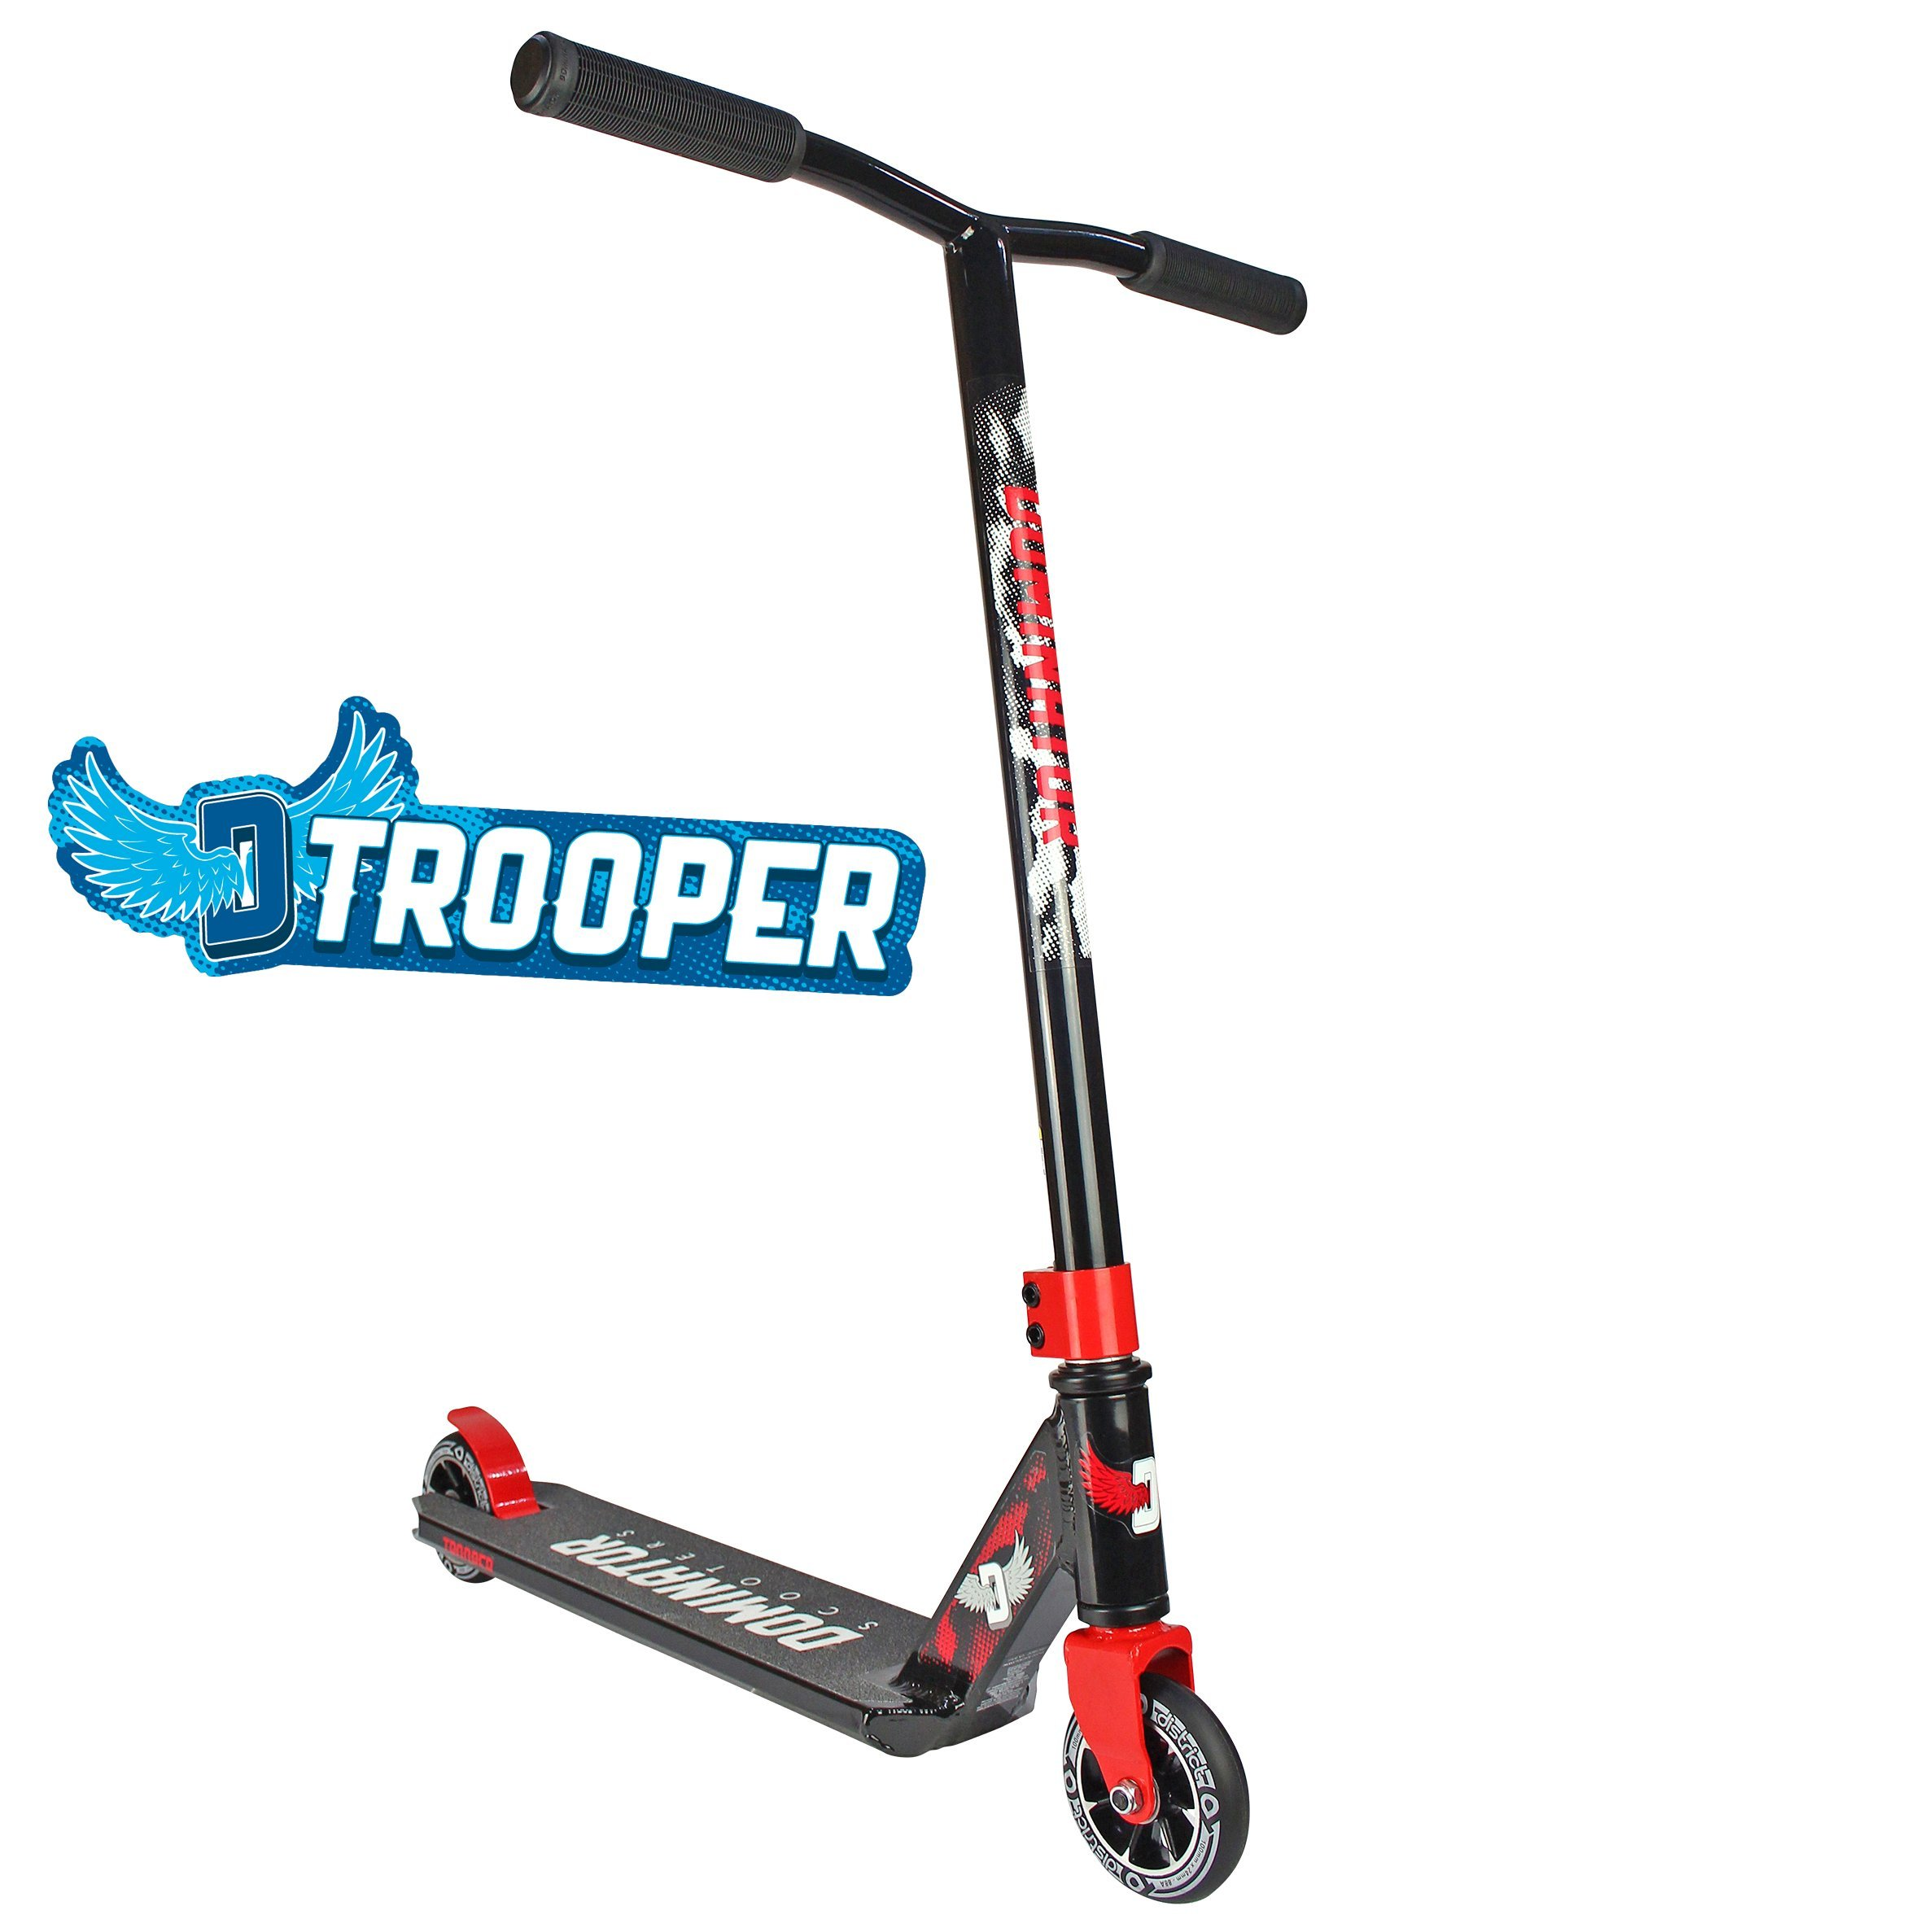 Dominator Trooper Pro Scooter (Black) by Dominator Scooters